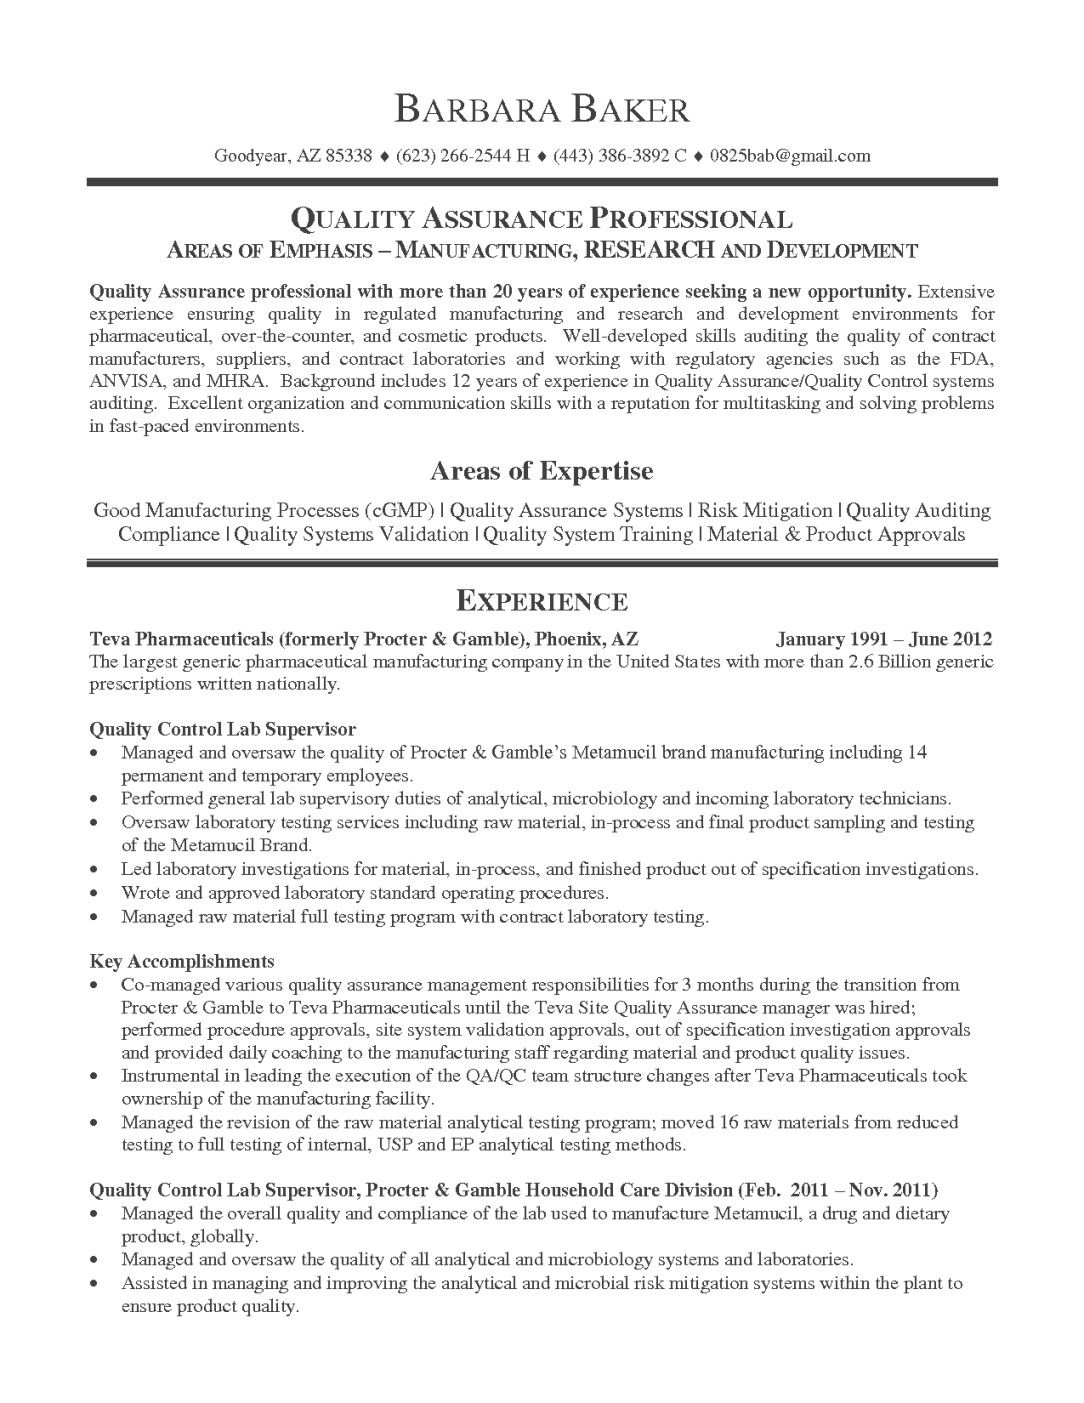 Quality Assurance Pharma Resume Templates Manager Resume